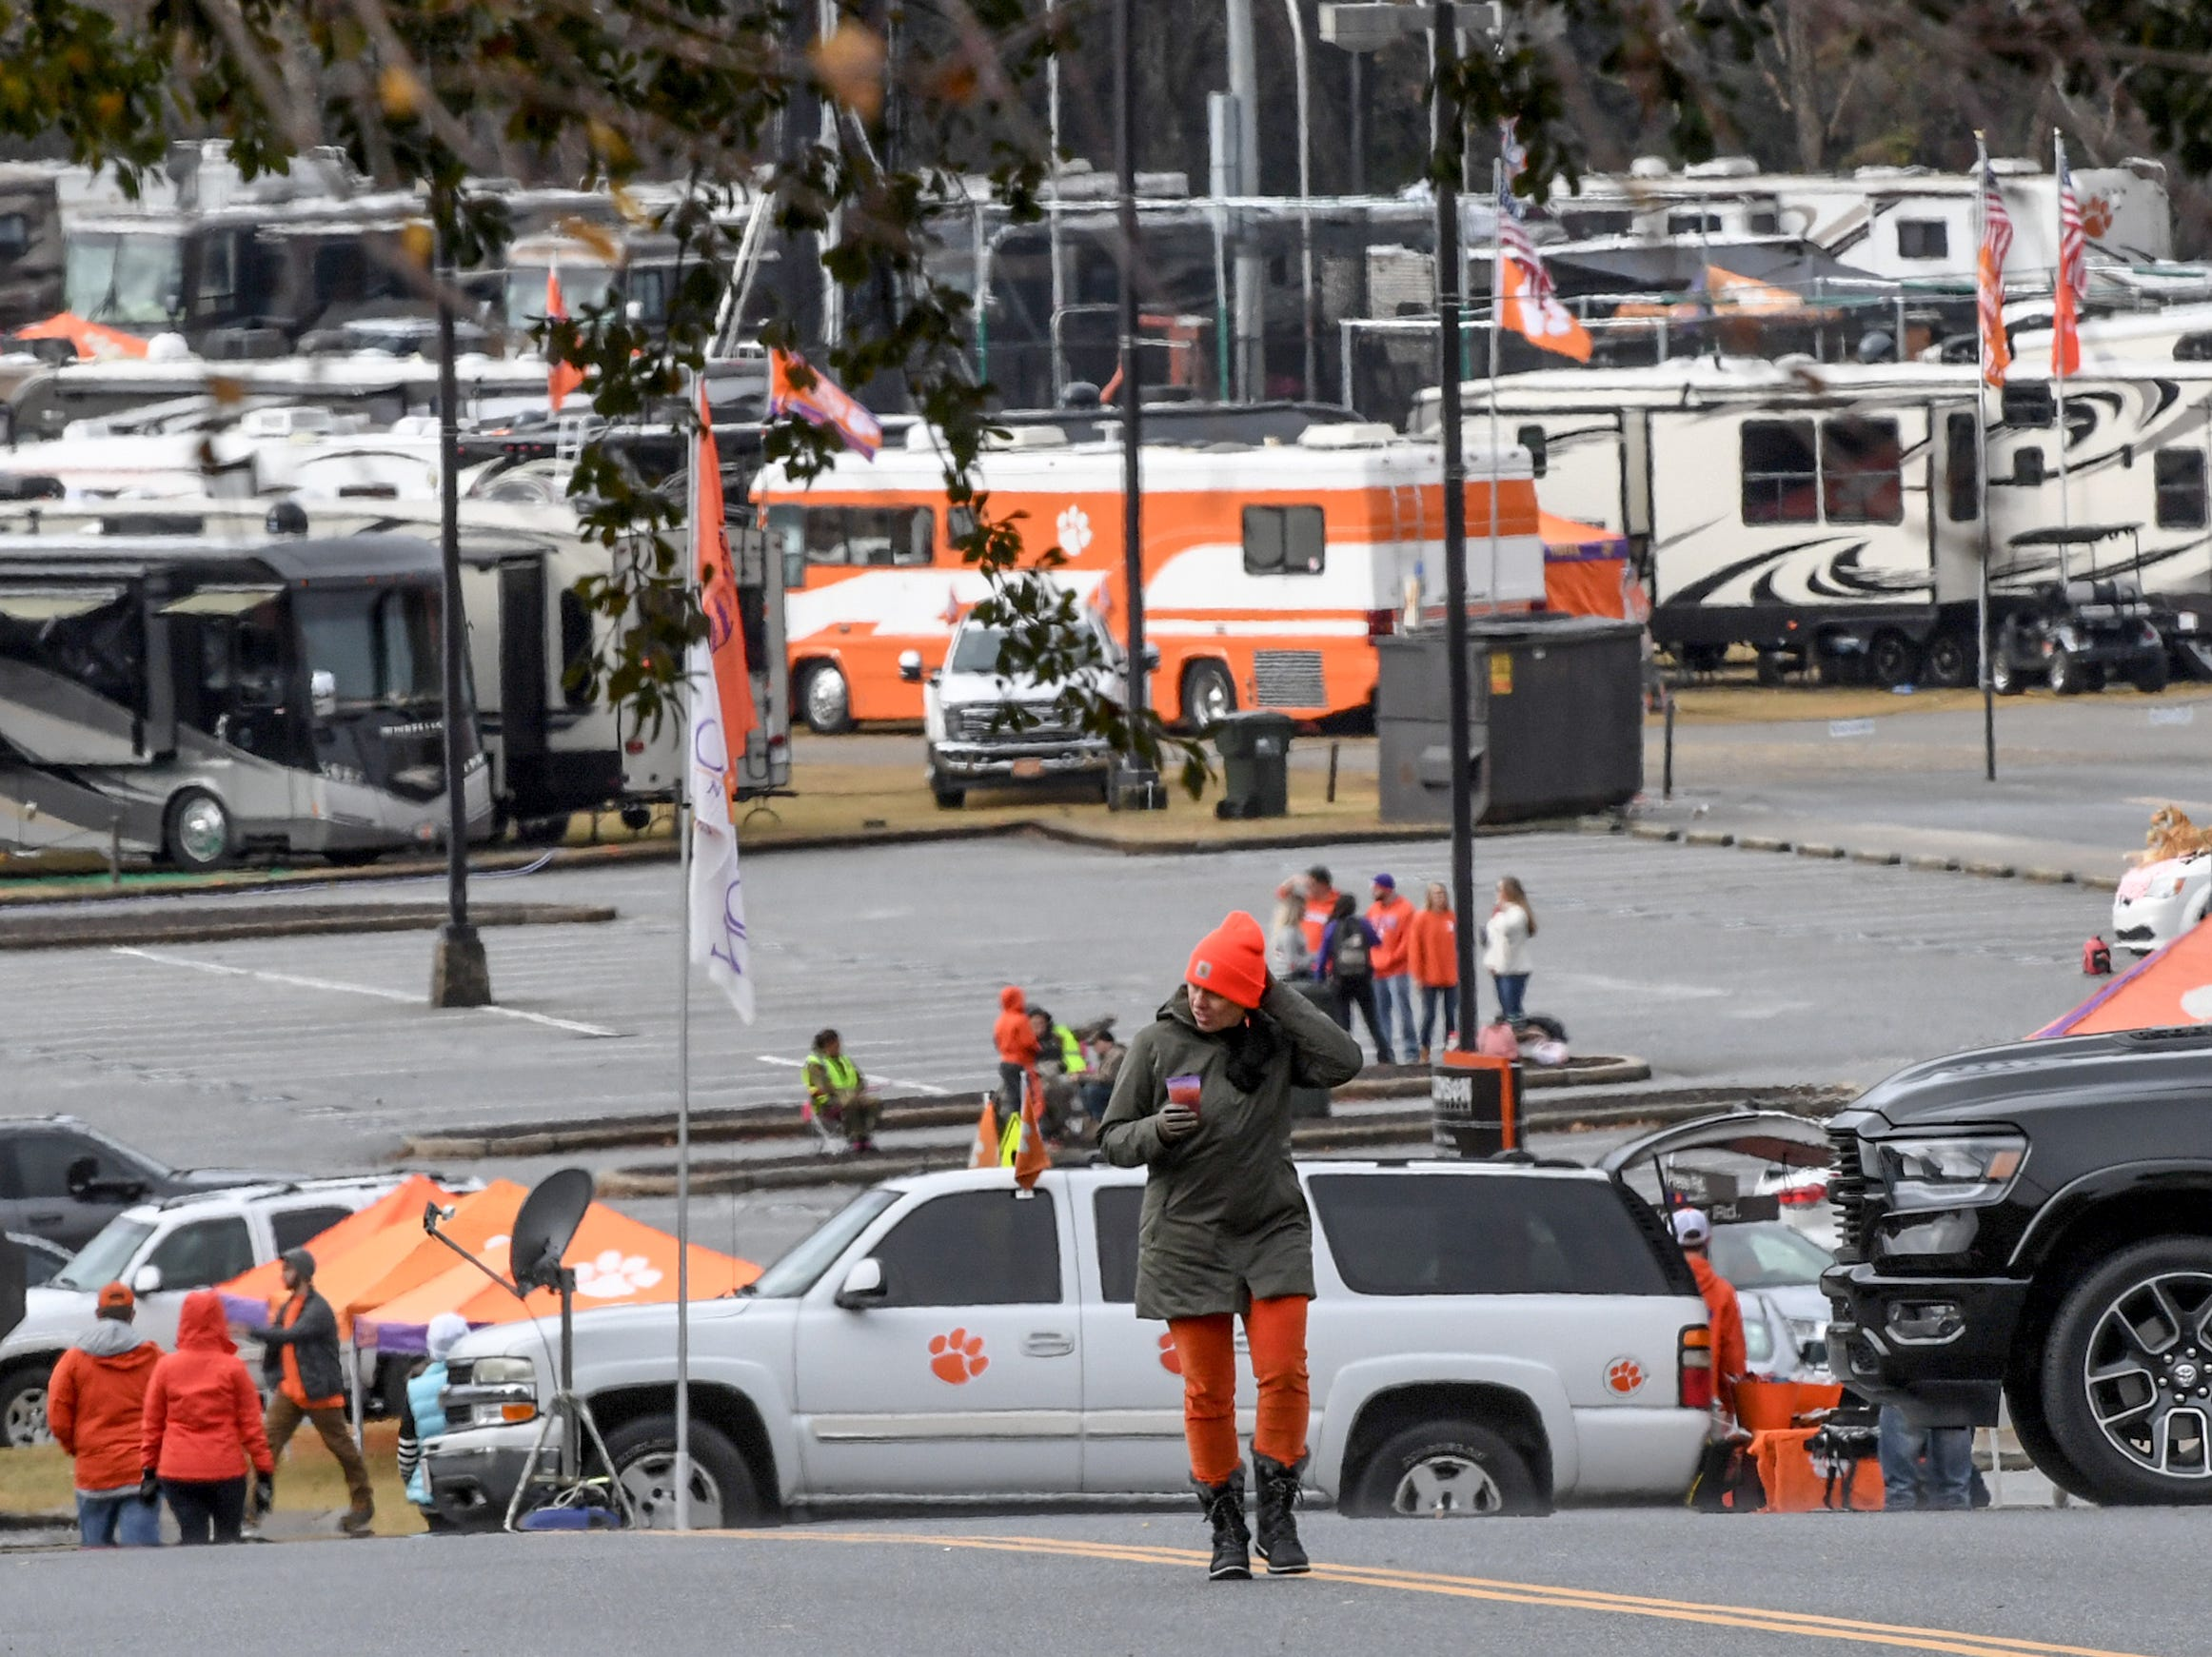 Fans tailgate from their cars and recreational vehicles hours before kickoff outside Memorial Stadium, before the South Carolina at Clemson football game in Clemson on Saturday, November 24, 2018.